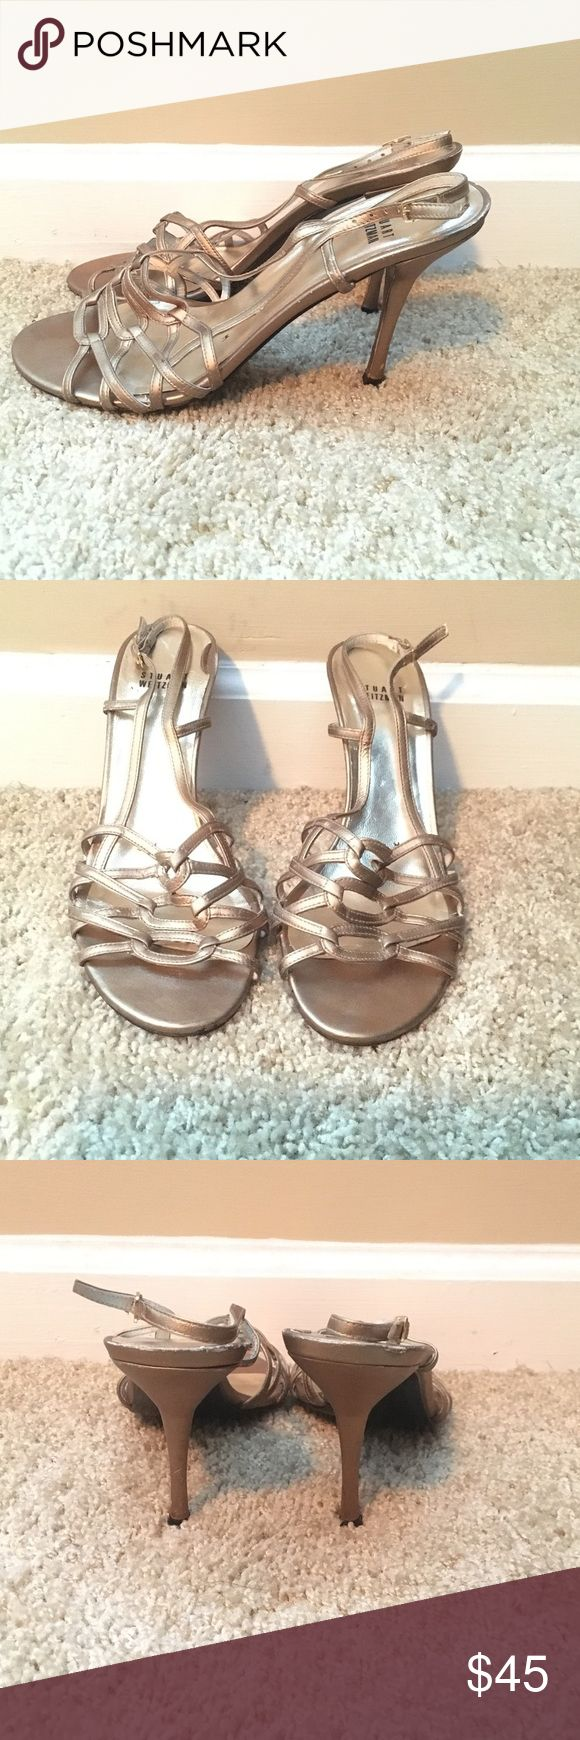 Gold sandal, heel around 3 1/2-4 inches. Stuart Weitzman Gold sandal, heel around 3 1/2-4 inches. Comfortable fit. Stuart Weitzman Shoes Sandals